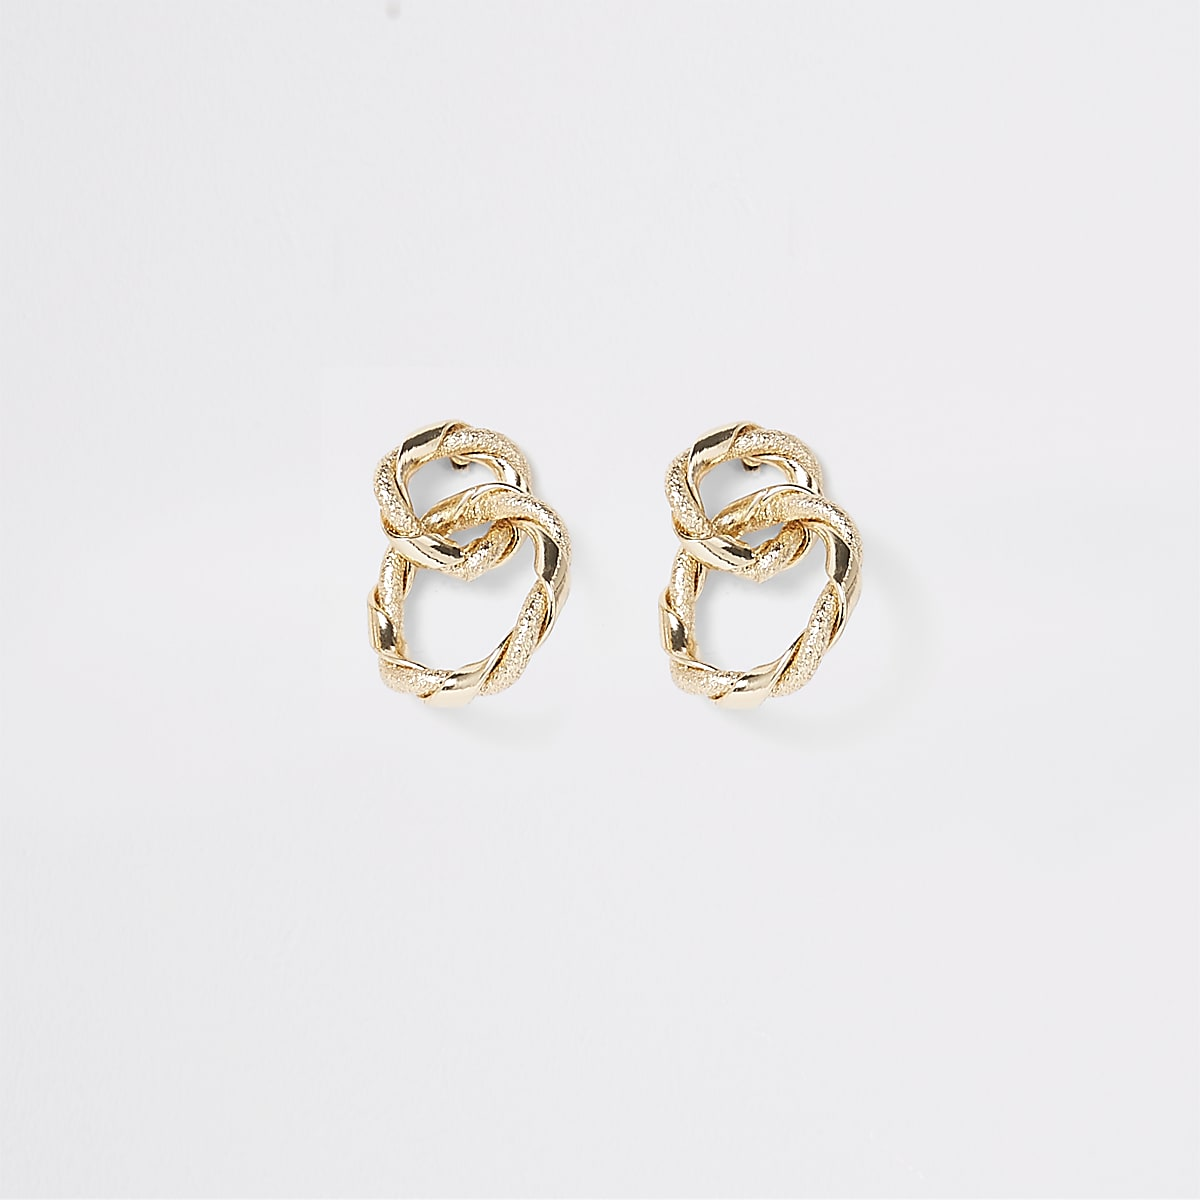 Gold color twisted interlinked stud earrings